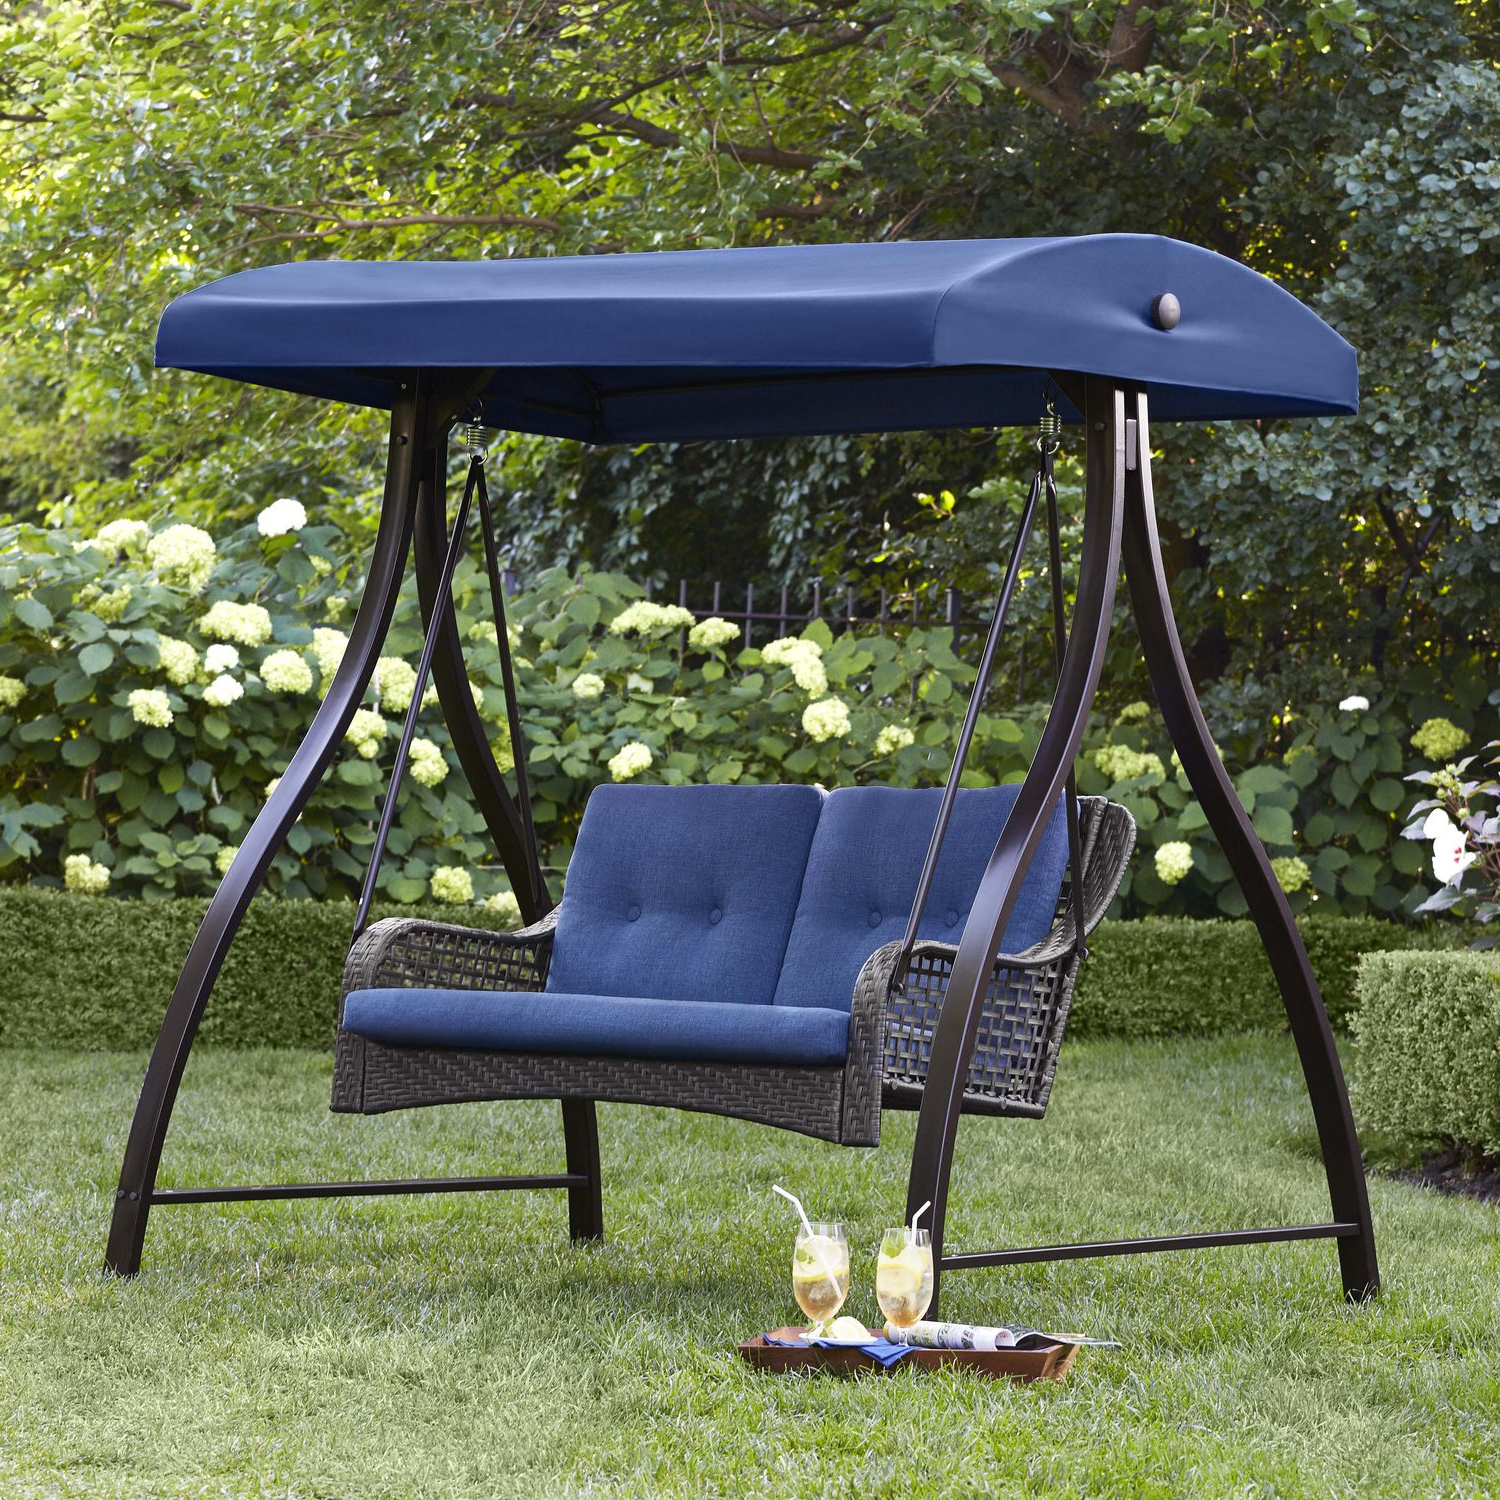 2019 2 Person Black Steel Outdoor Swings Throughout Hometrends Tuscany 2 Person Swing (View 8 of 30)